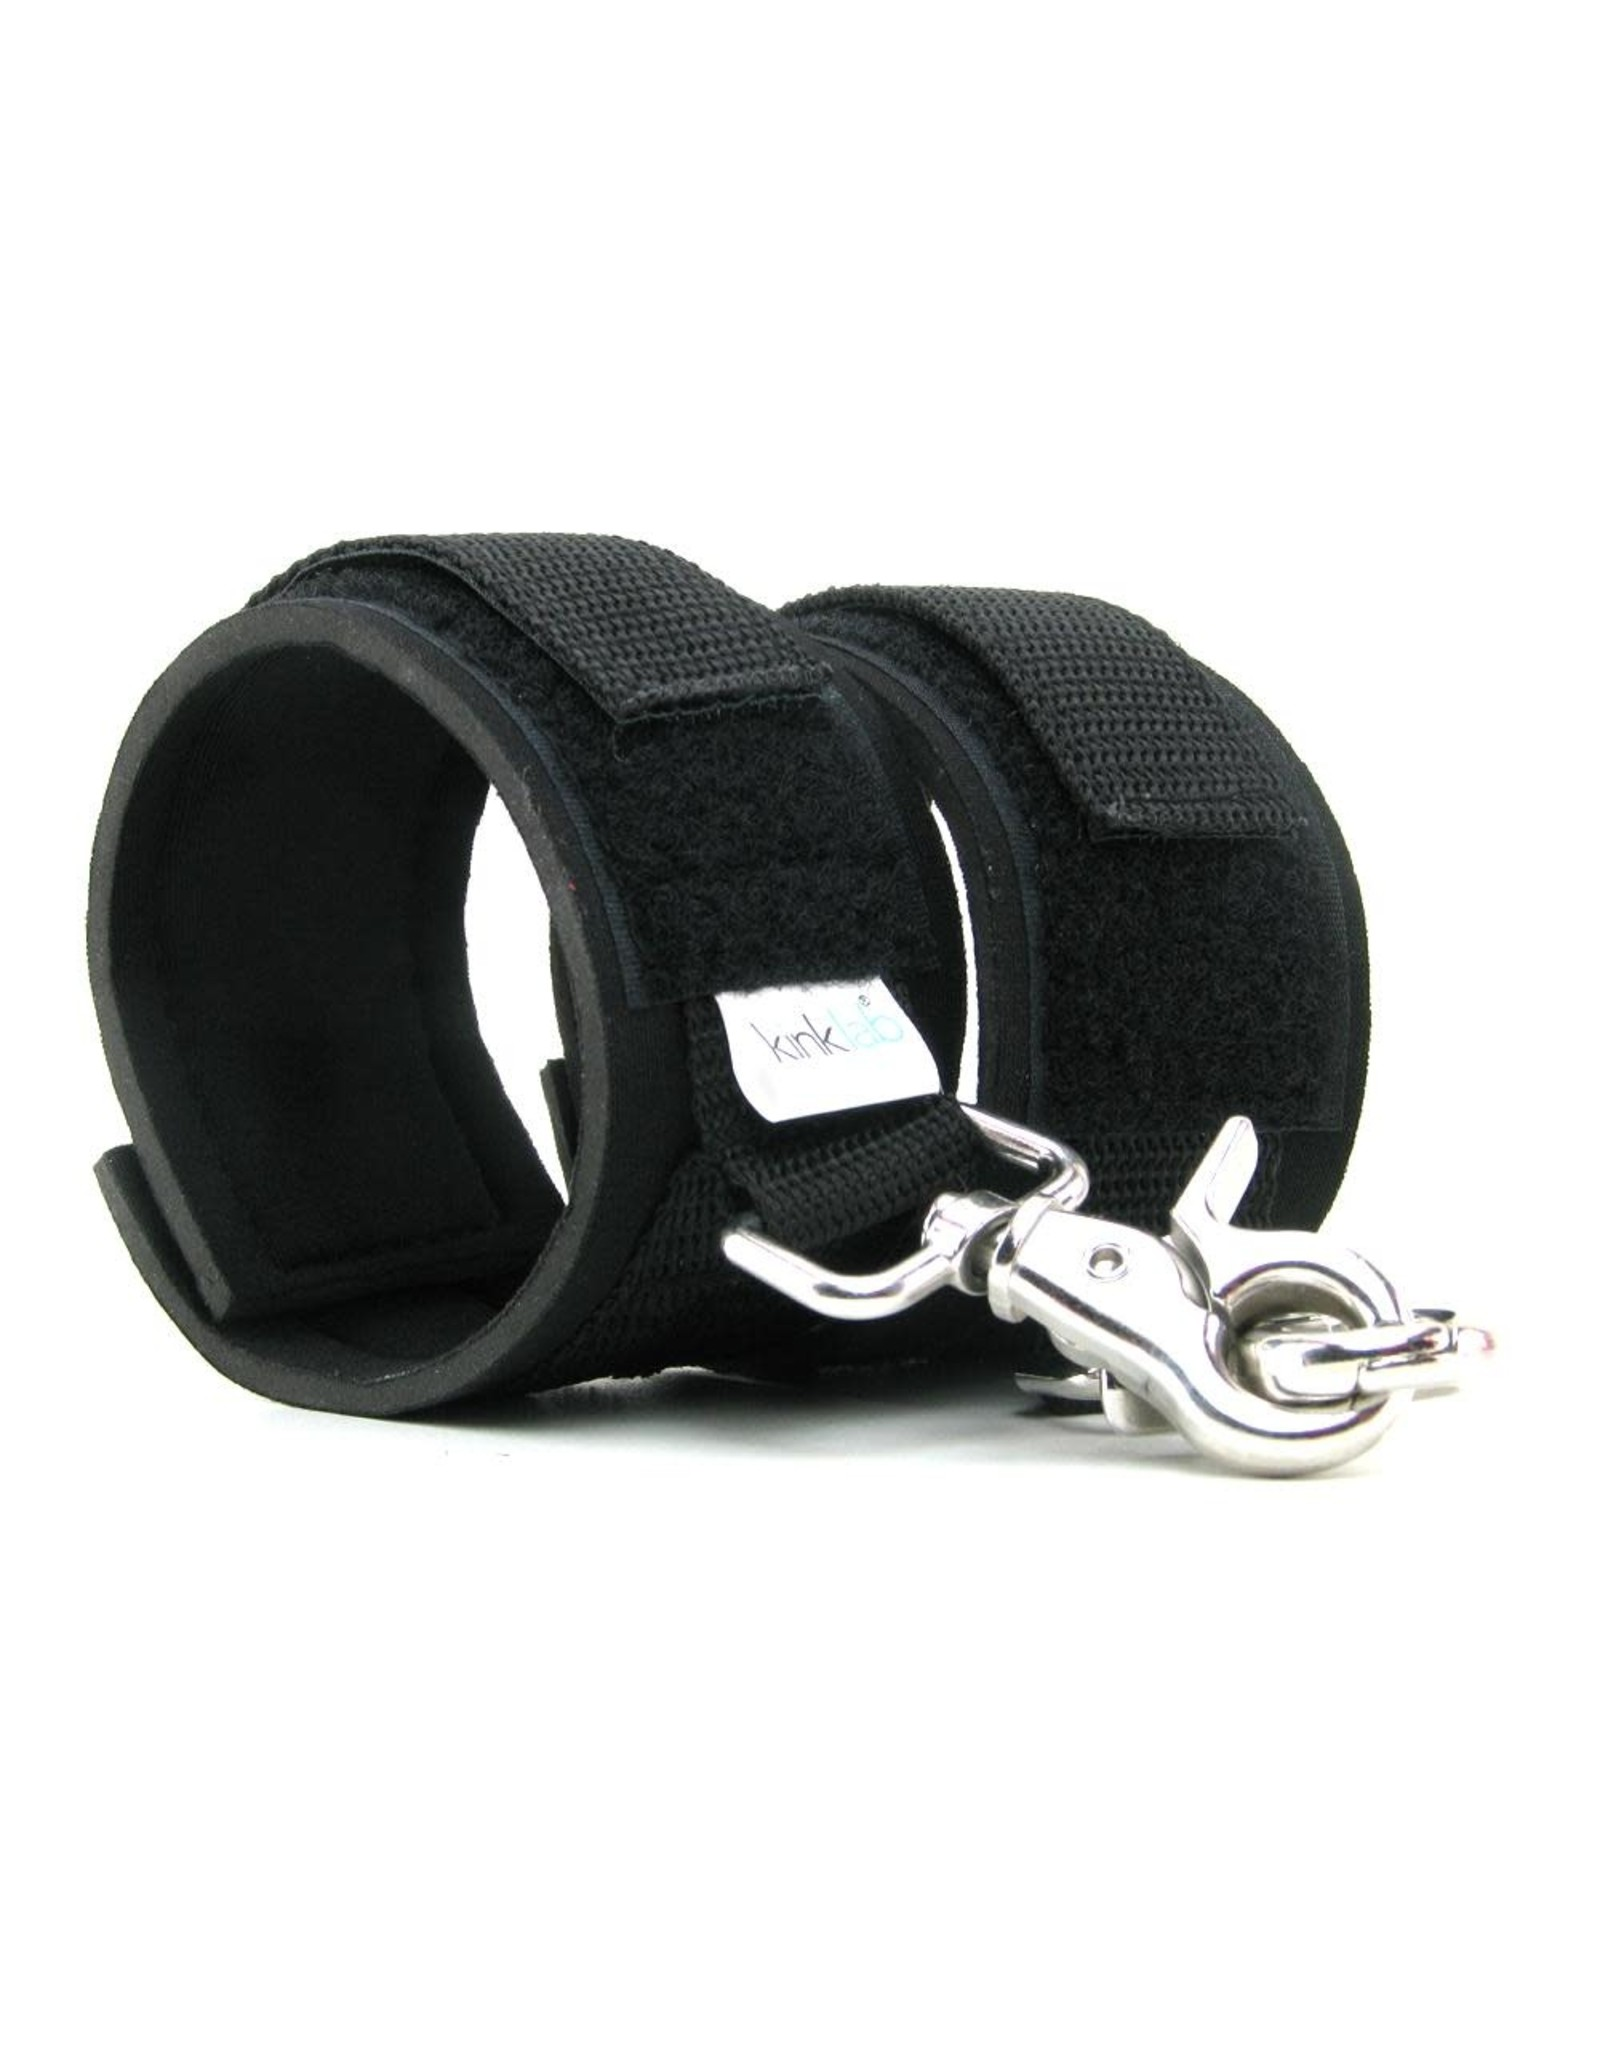 KINKLAB - NEOPRENE CUFFS - BLACK